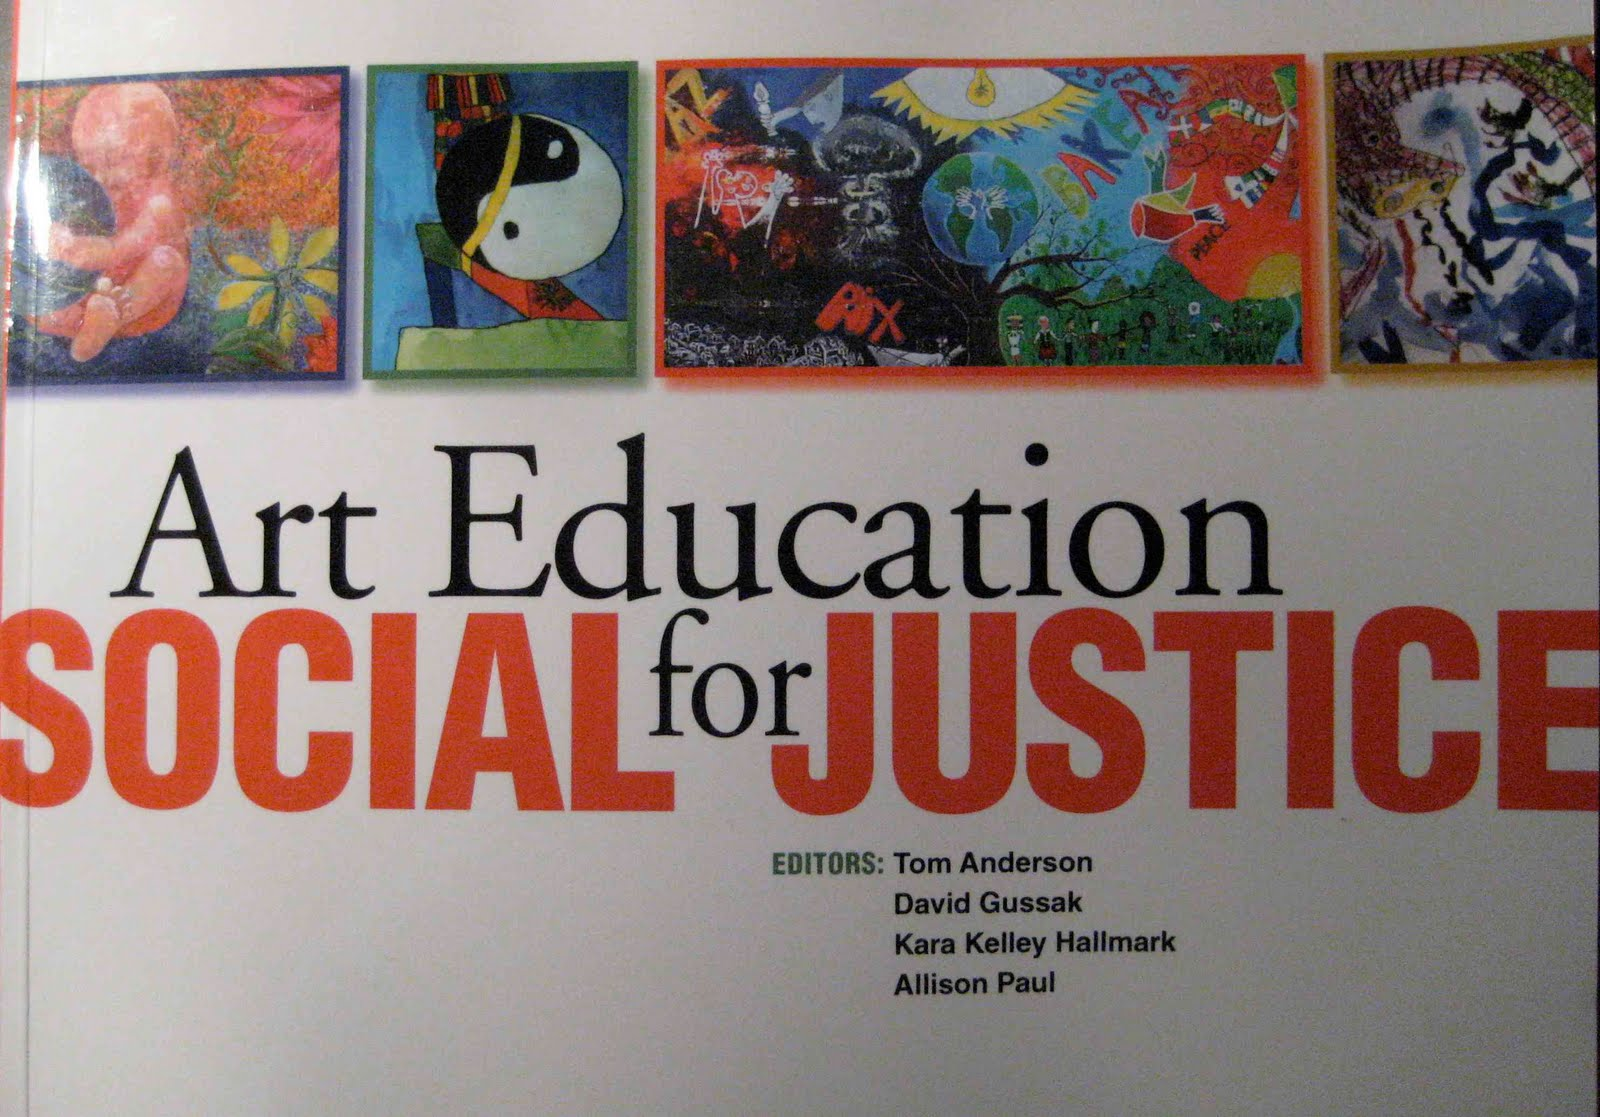 Education for social justice published by the national art education